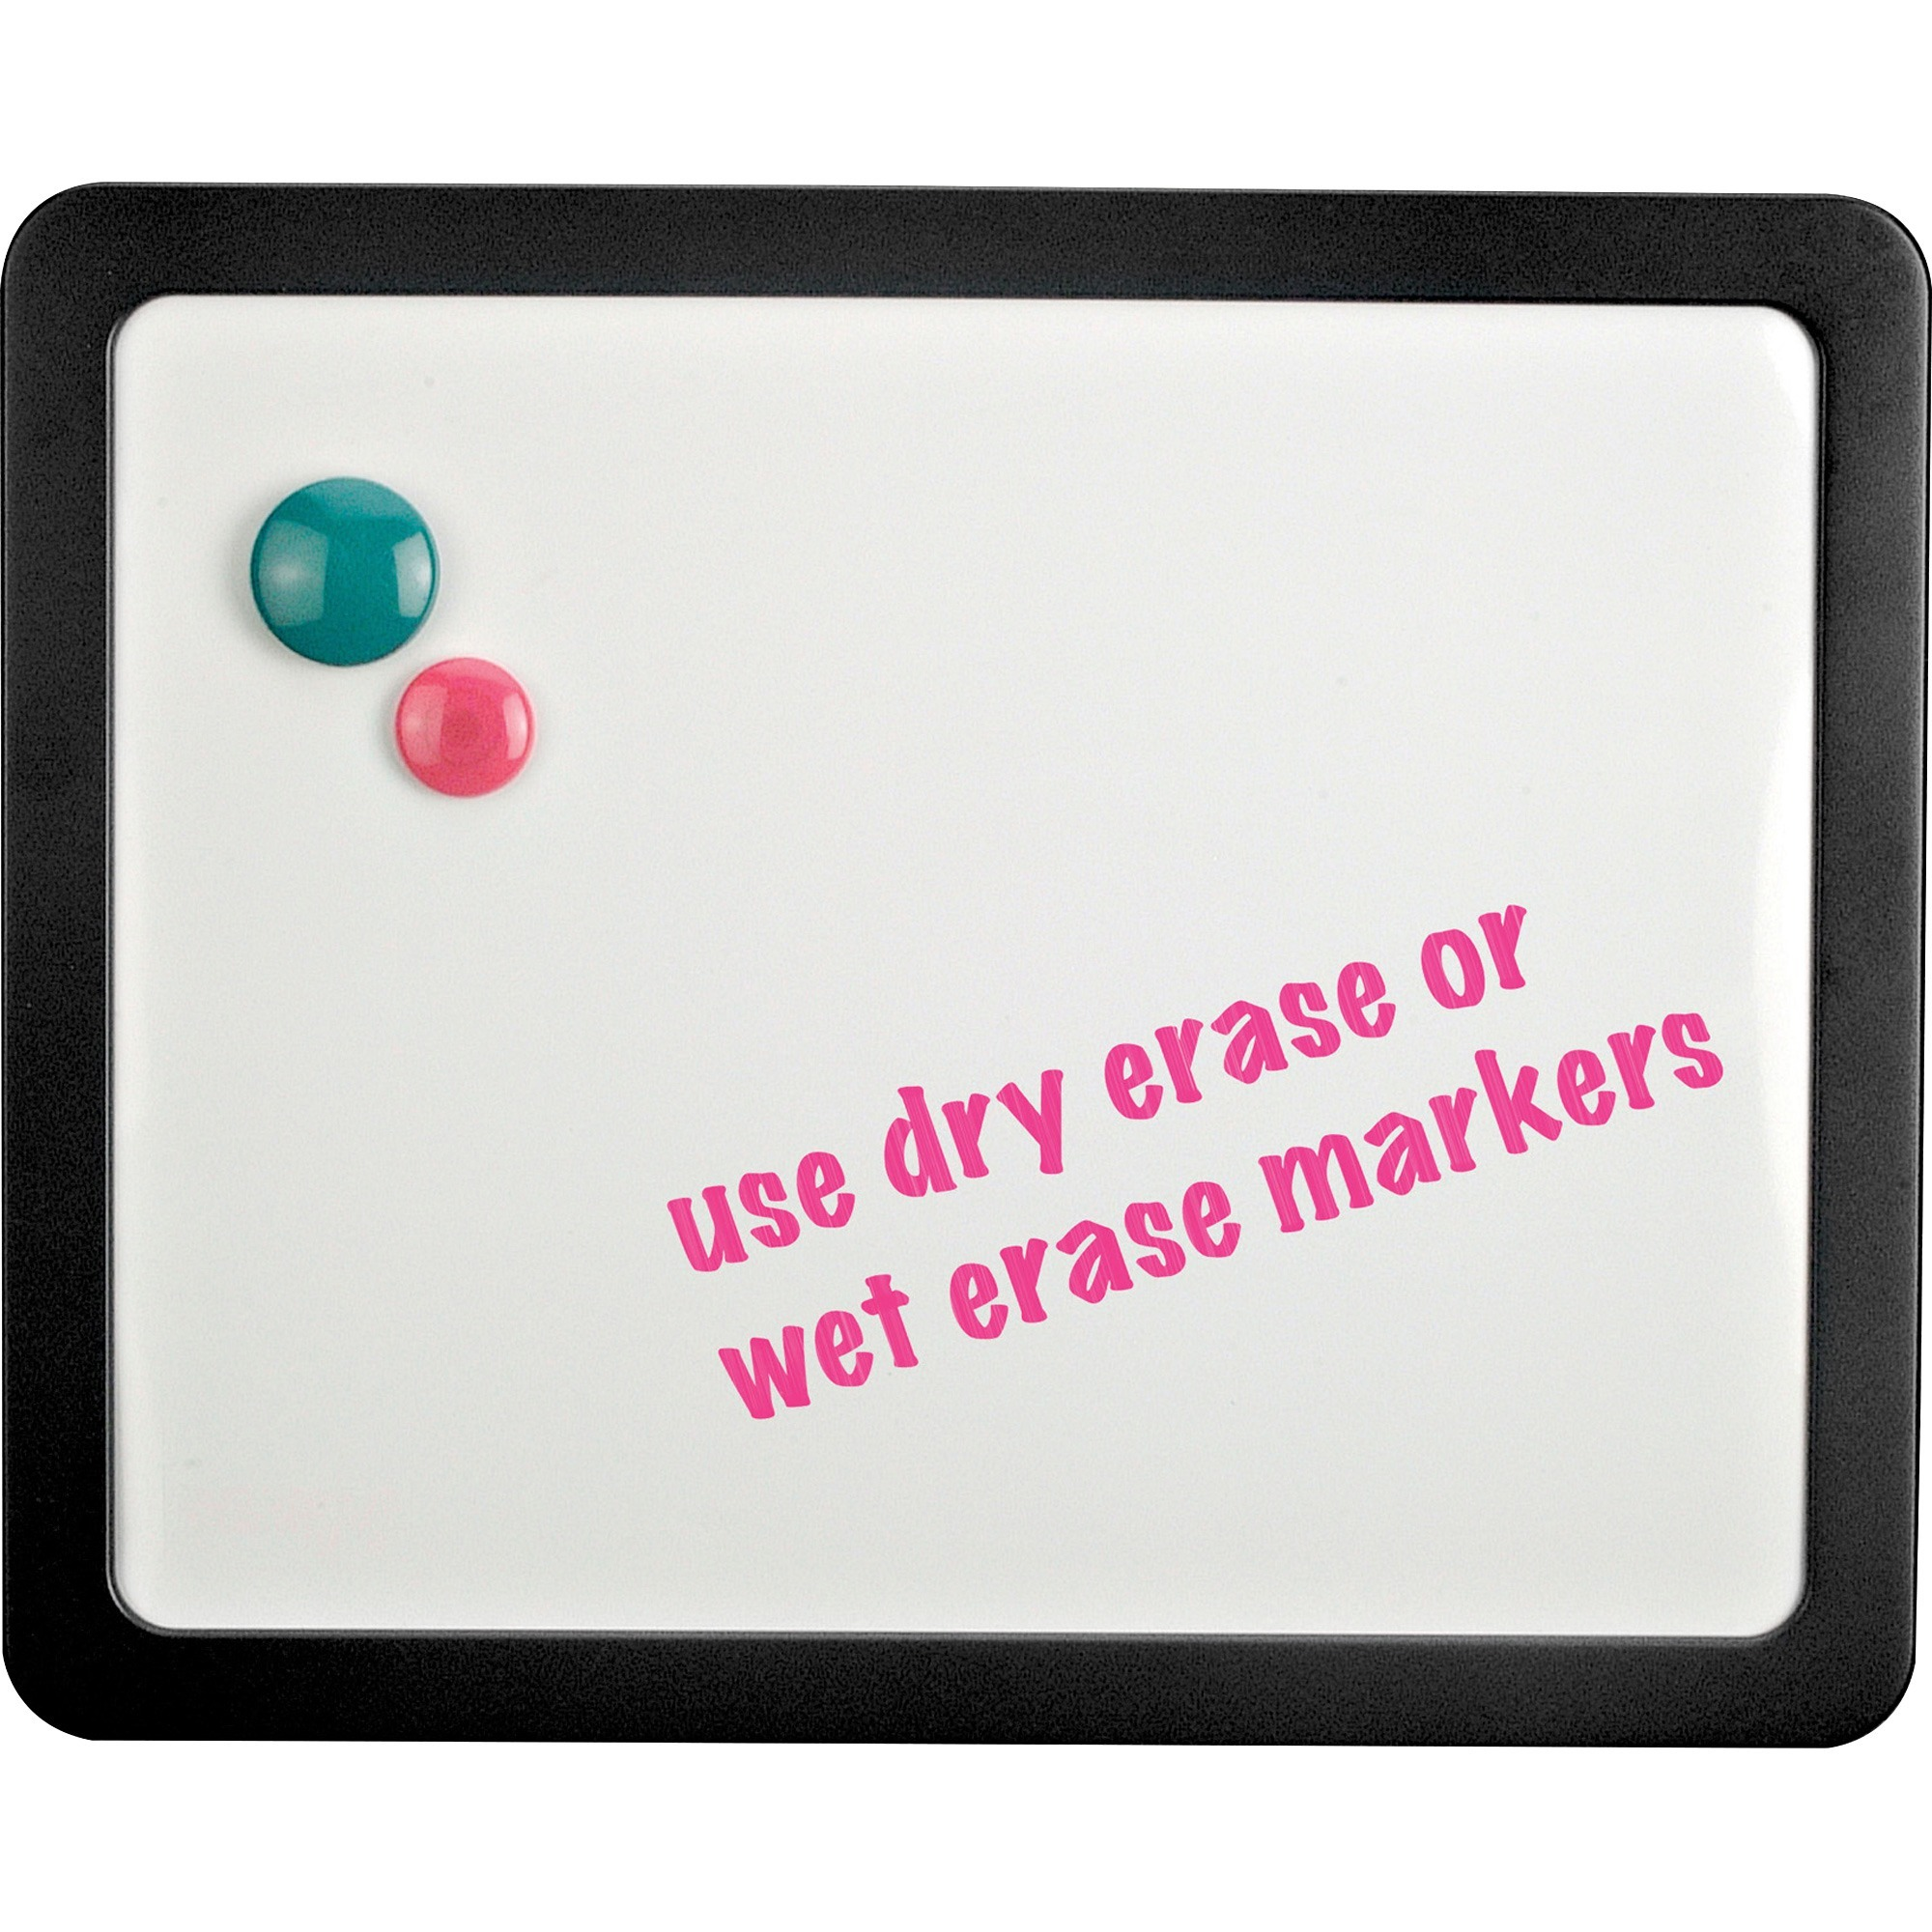 Lorell Magnetic Dry-erase Board - 15.9 (1.3 Ft) Width X 12.9 (1.1 Ft) Height - Black Frame - 1 Each